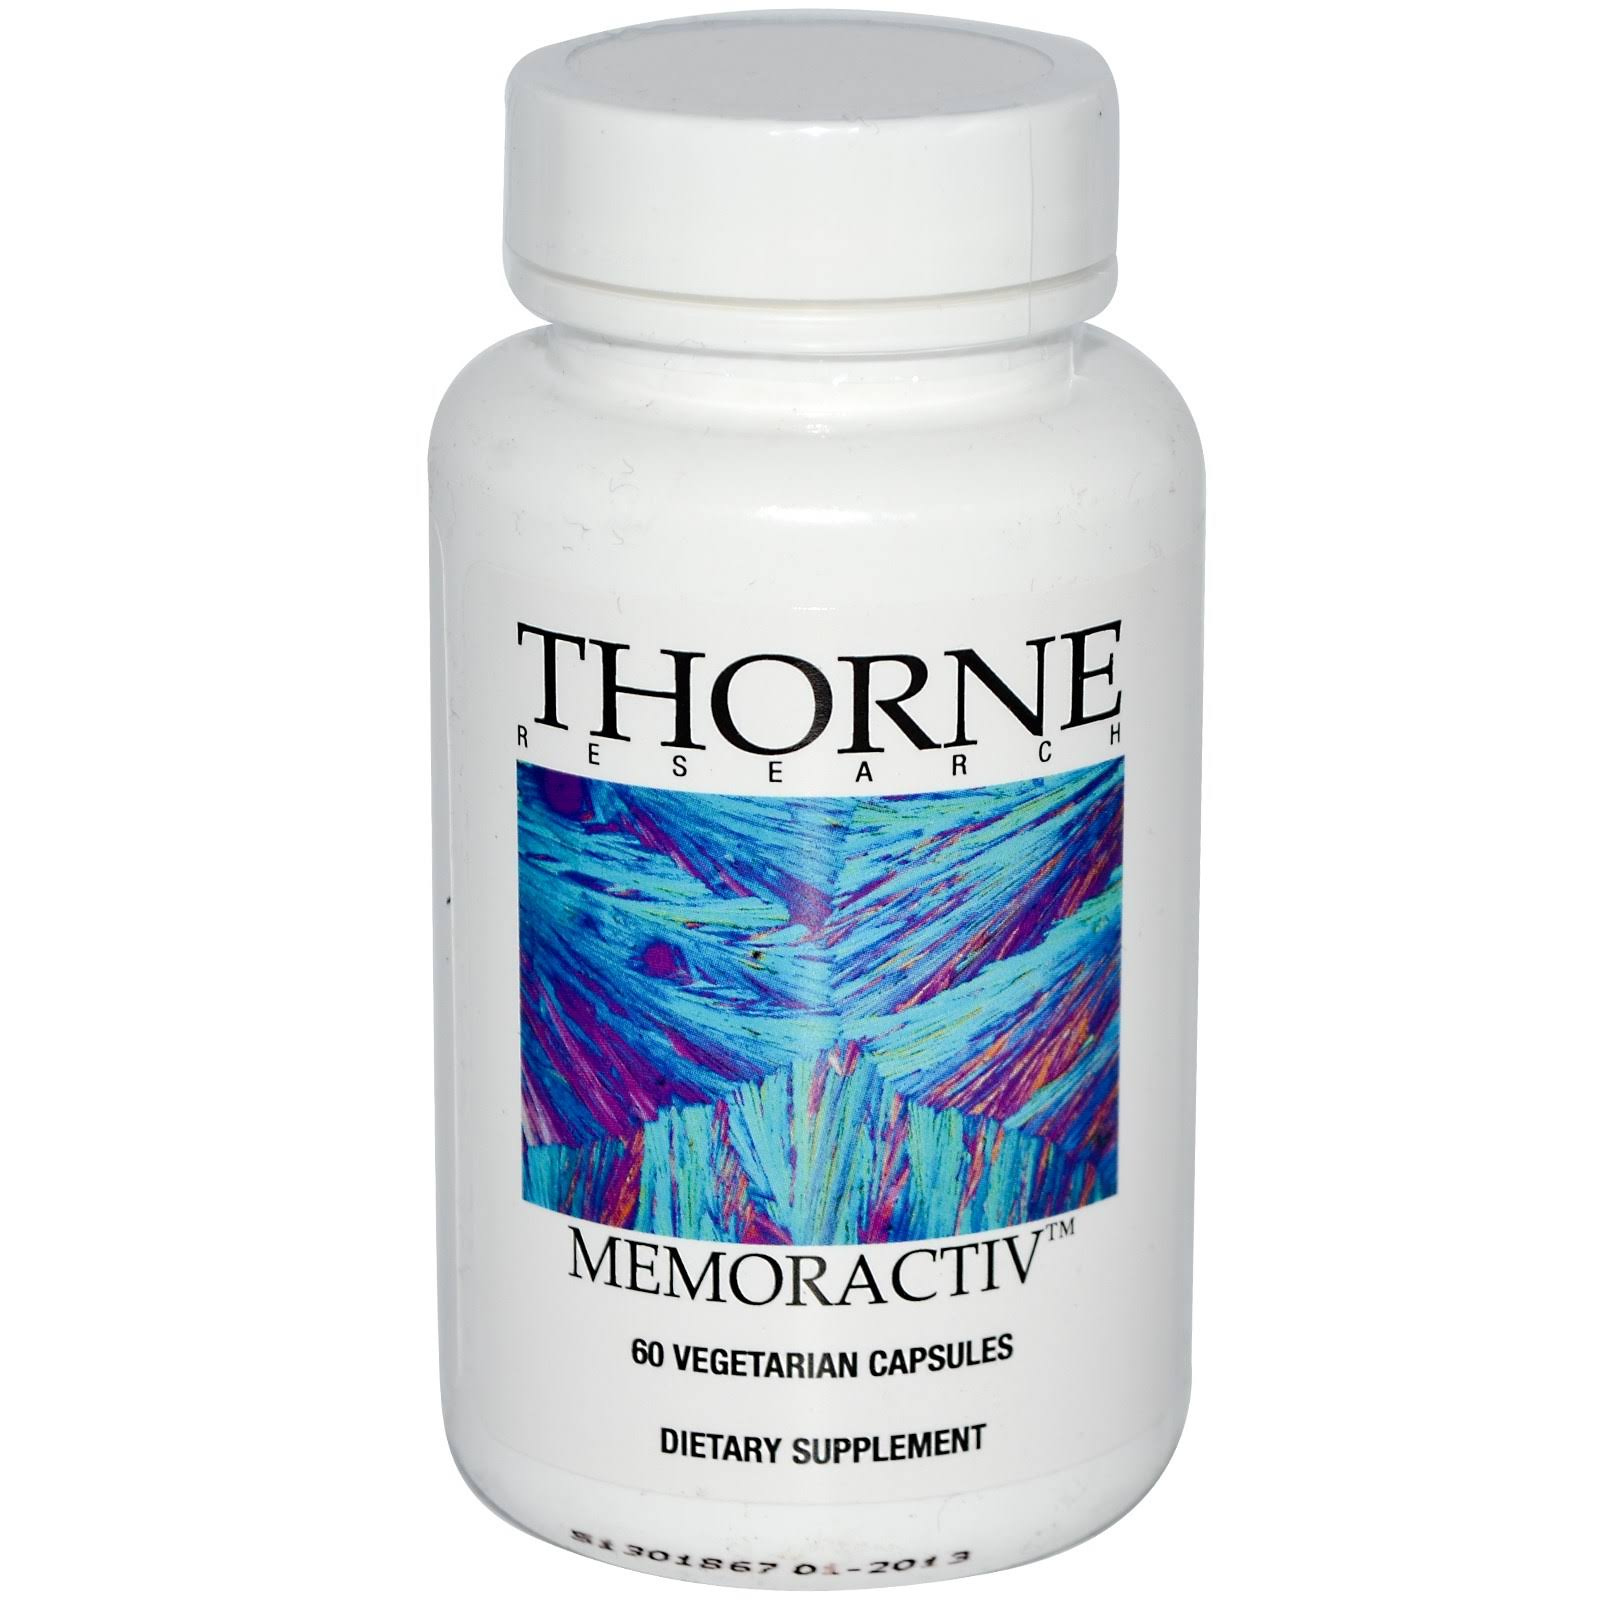 Thorne Research Memoractiv Dietary Supplement - 60ct